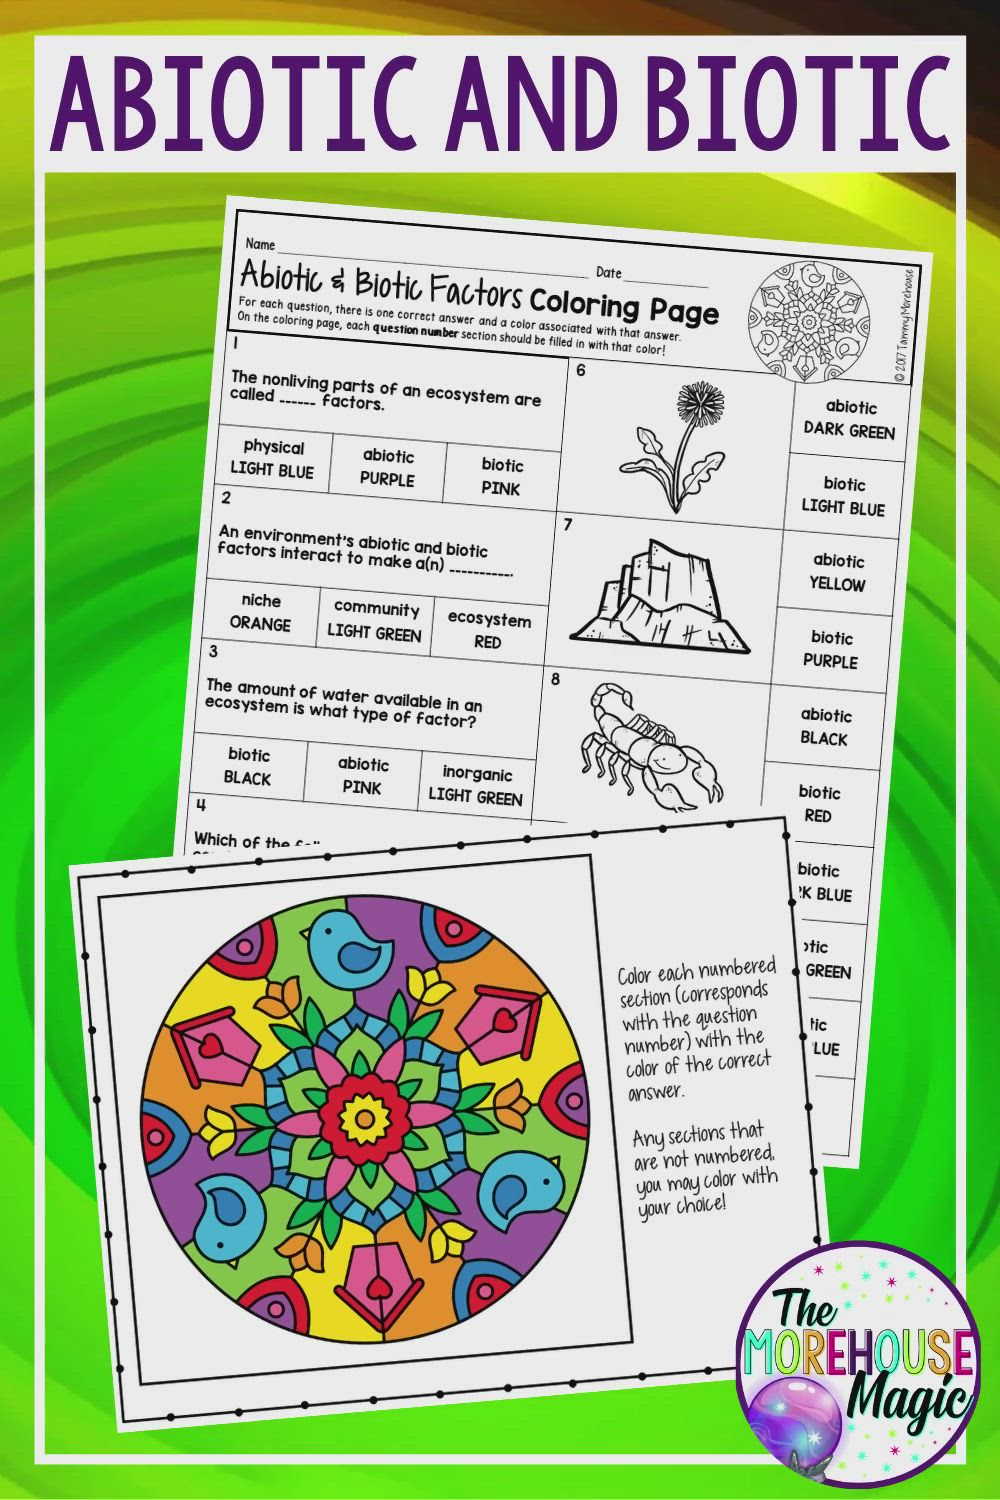 Abiotic And Biotic Factors Science Color By Number Activity For Middle Video Science Lessons Middle School Science Notebook Middle School Life Science Middle School